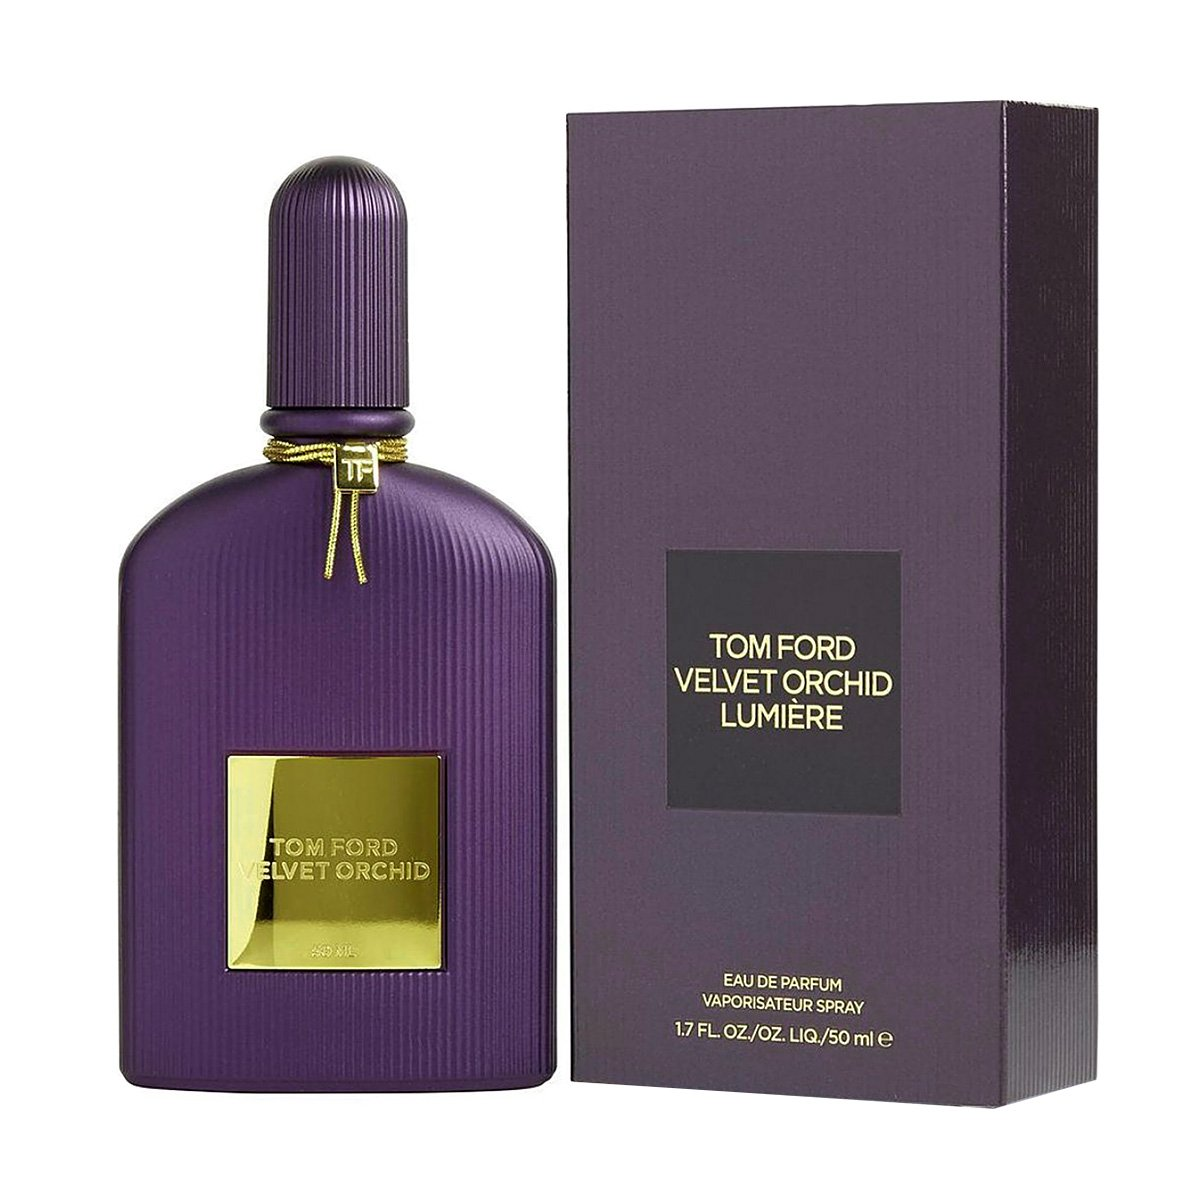 Tom Ford Velvet Orchid edp